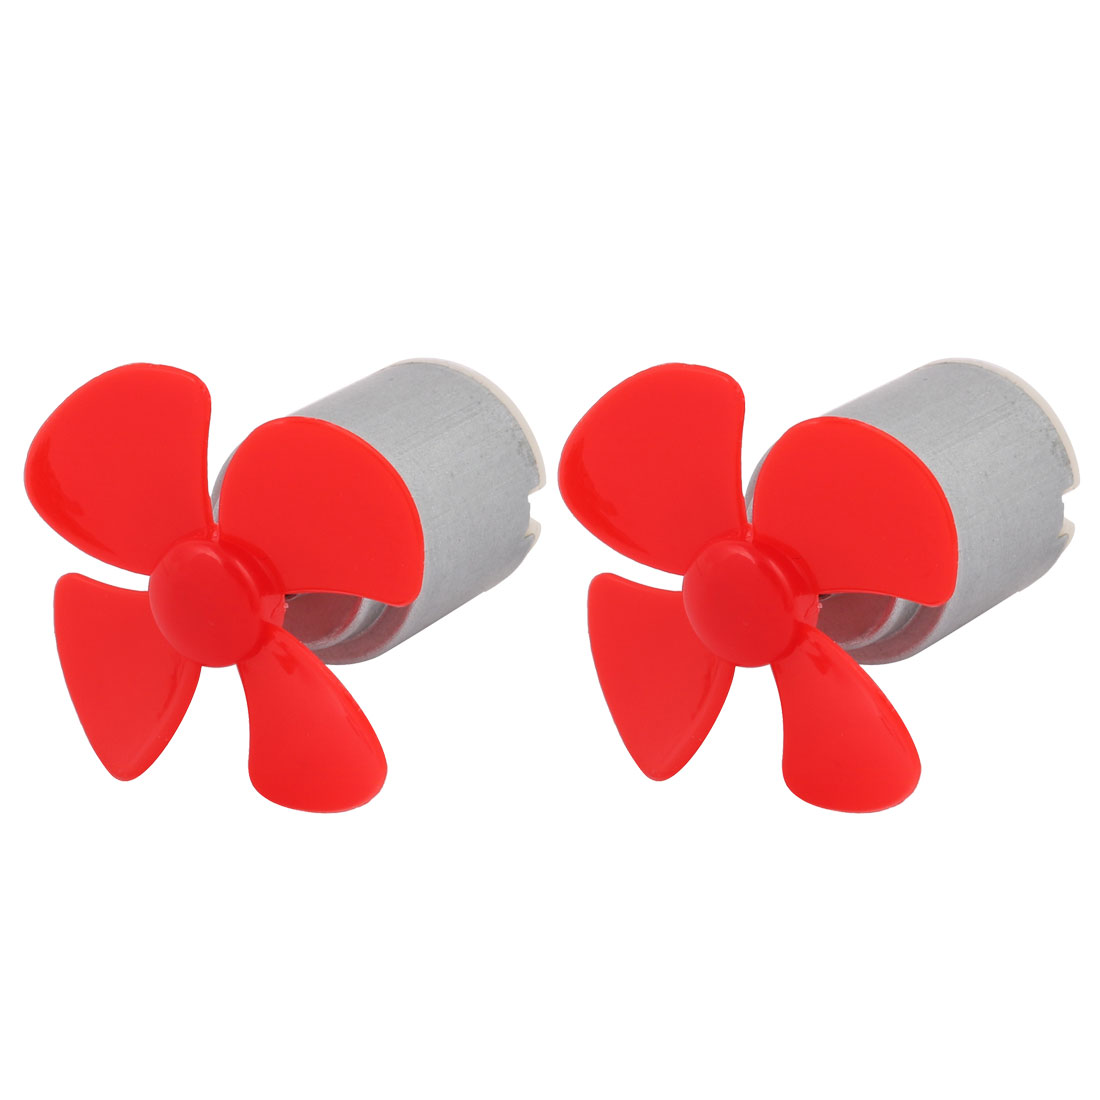 2pcs DC 3V 0.13A 17000RPM Strong Force Motor 4 Blades 40mm Red Propeller for RC Aircraft